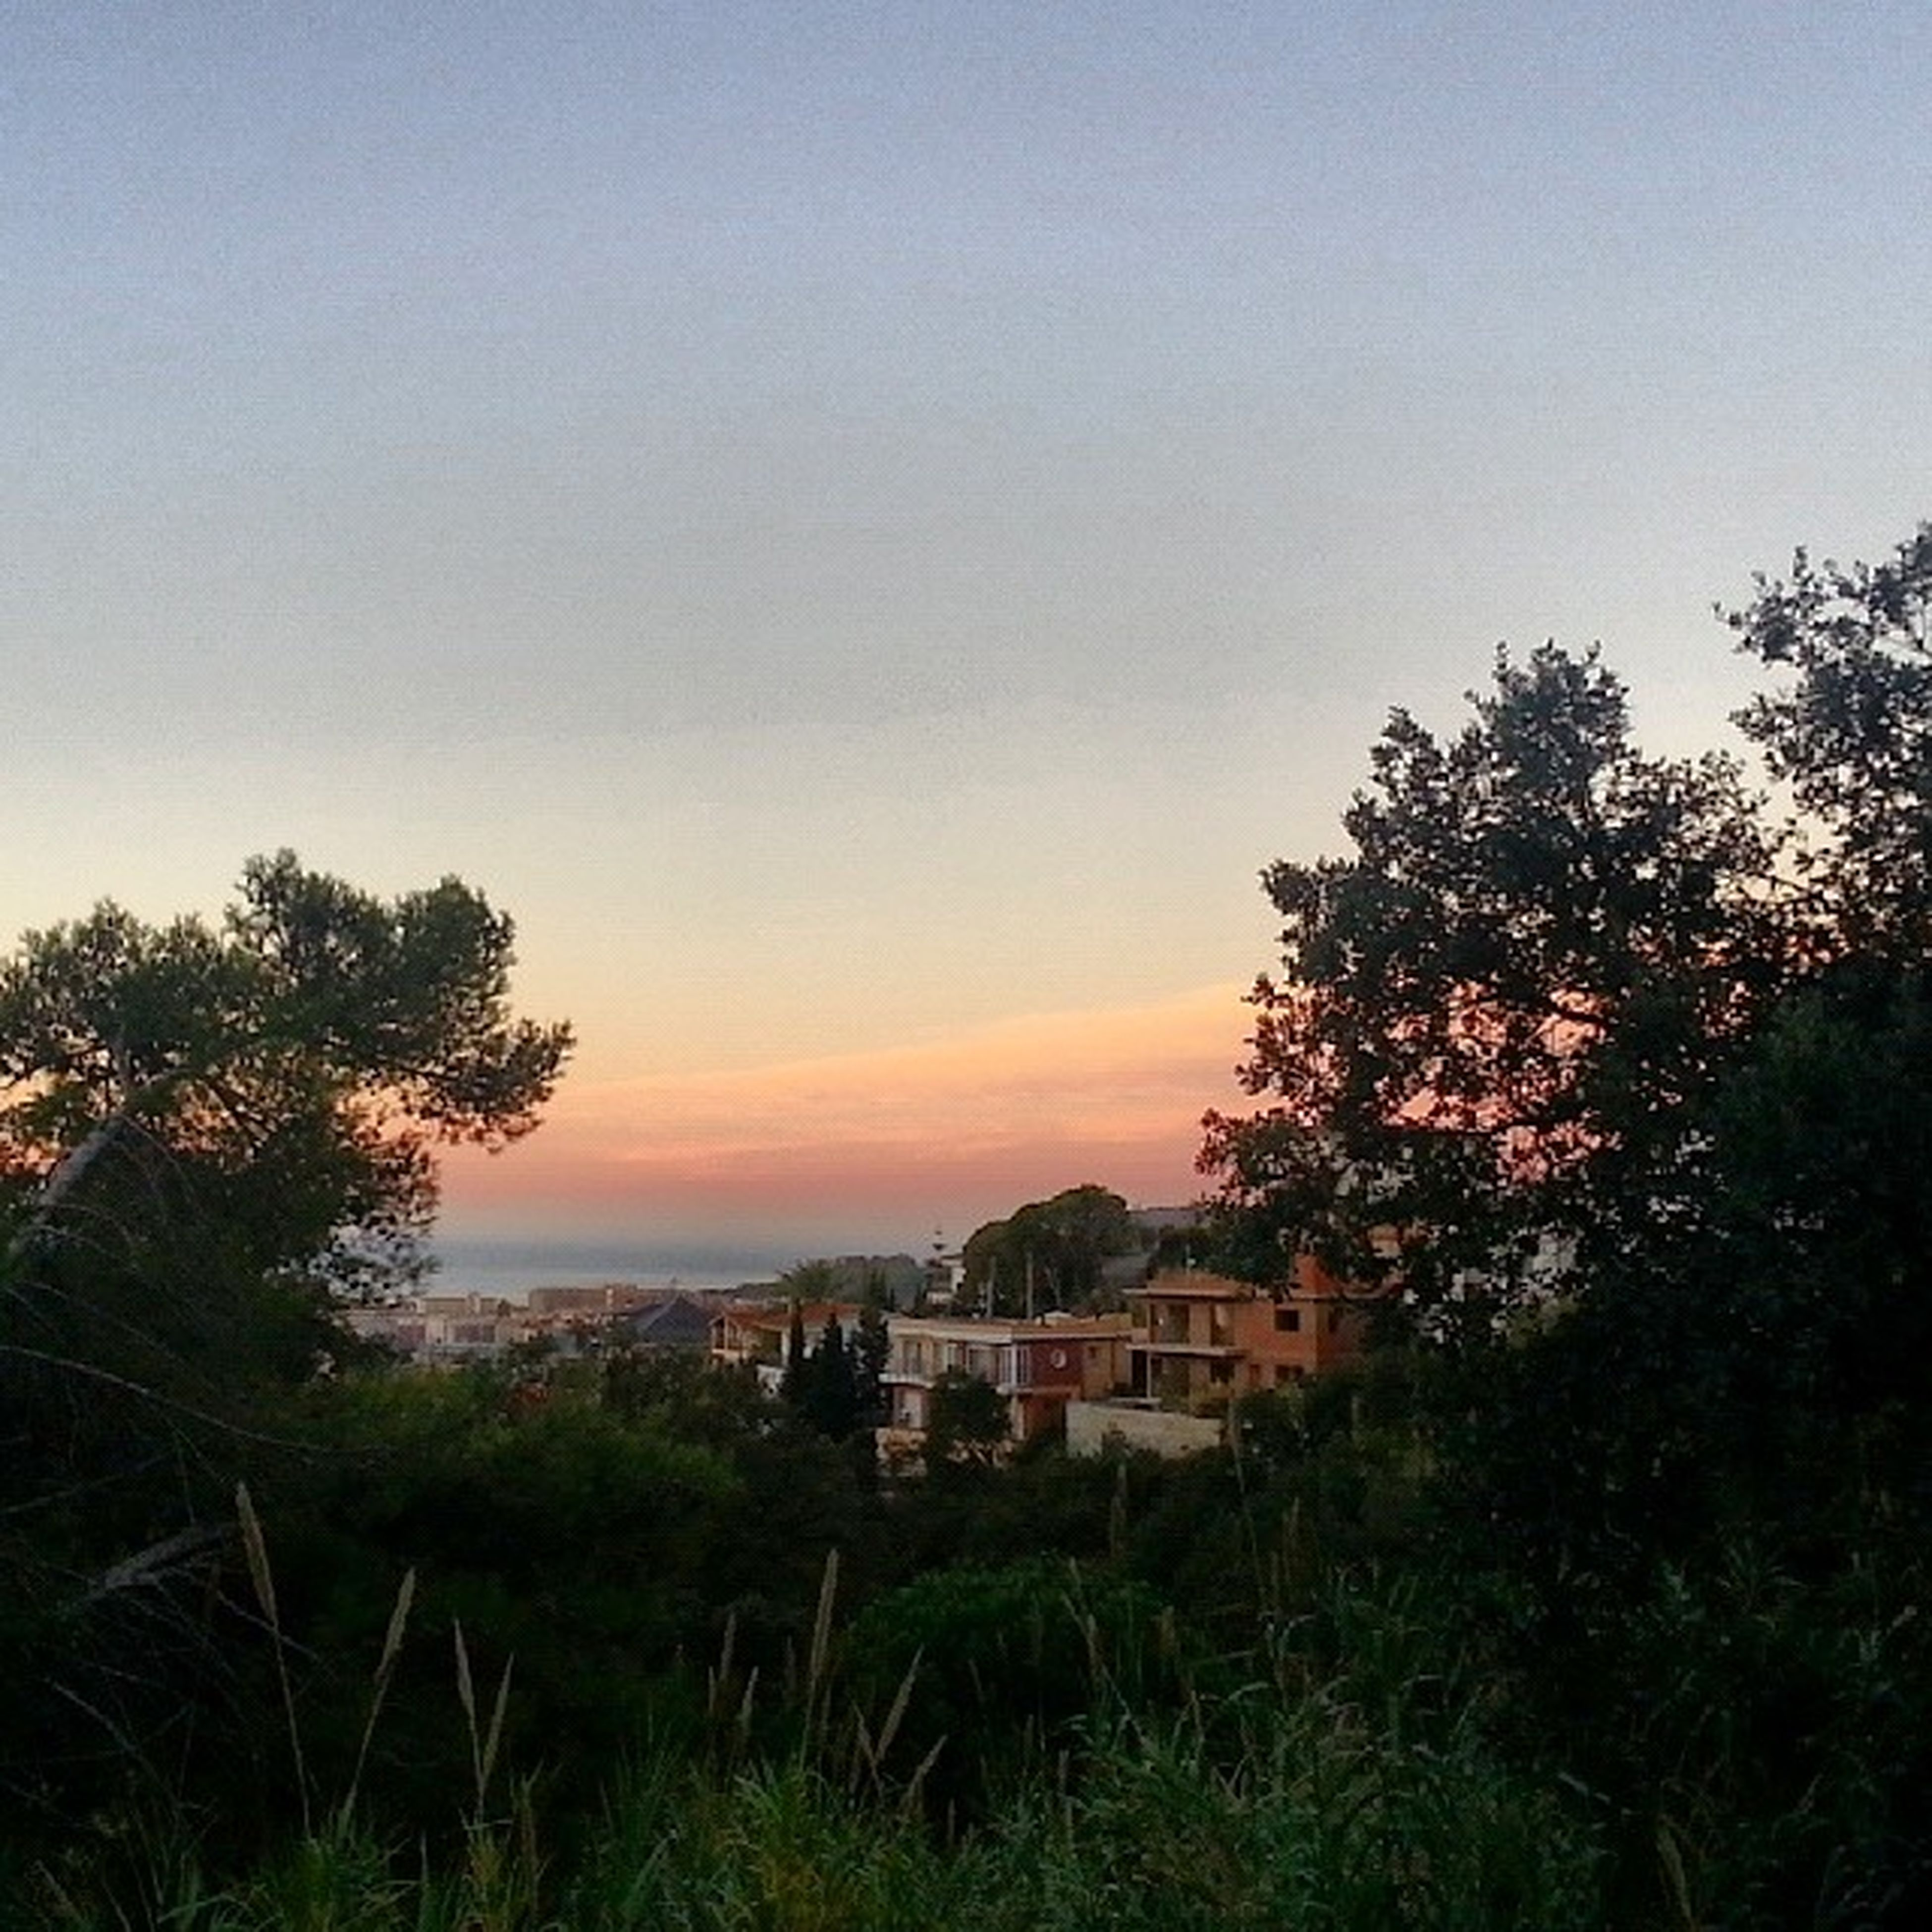 building exterior, sunset, tree, architecture, built structure, copy space, house, clear sky, sky, beauty in nature, growth, nature, scenics, tranquil scene, tranquility, orange color, residential structure, landscape, plant, outdoors